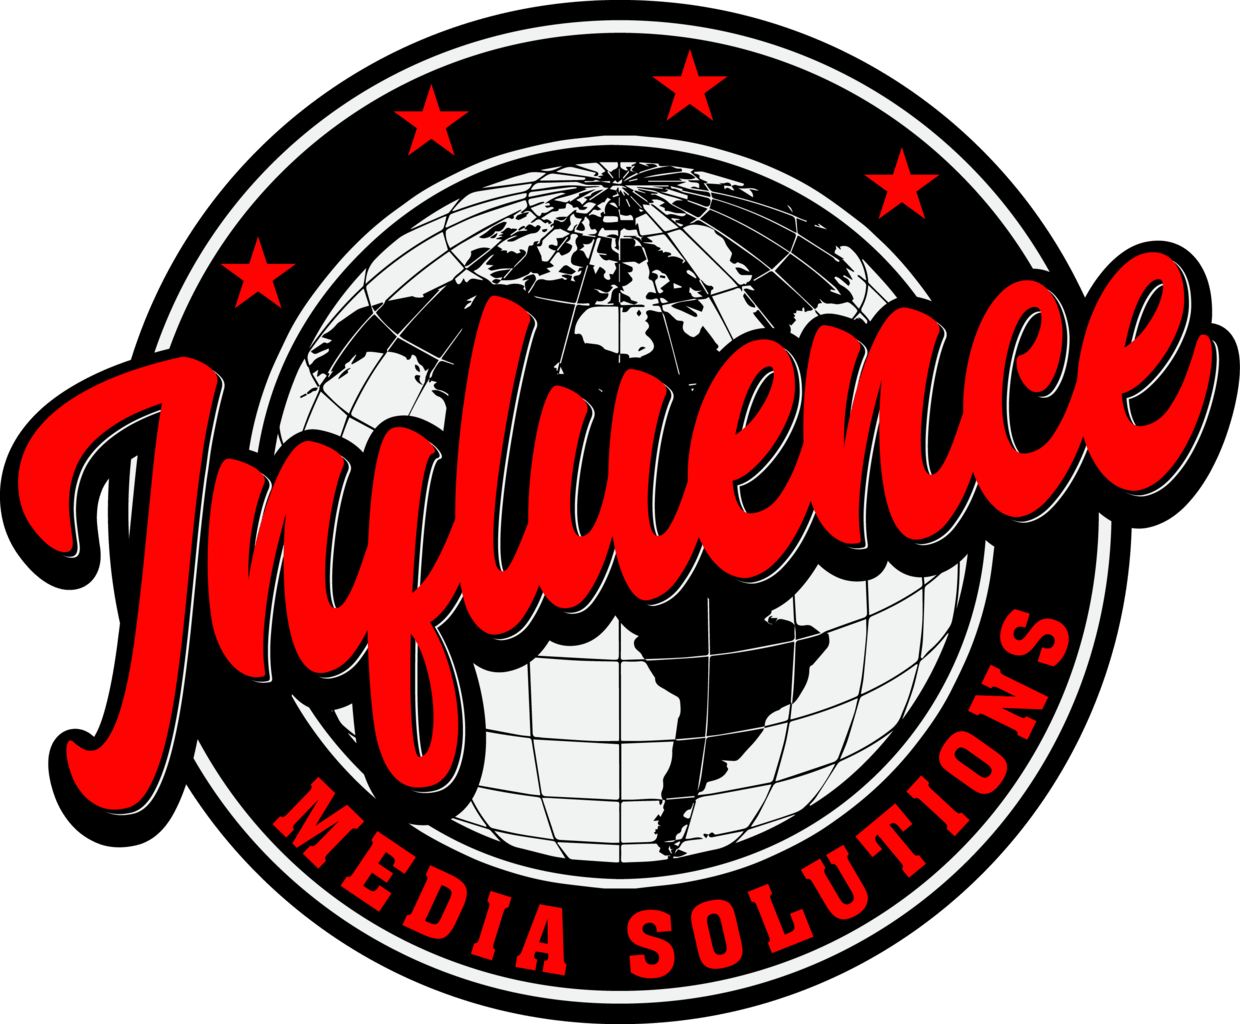 Influence Media Solutions 1 Photos & 0 Reviews